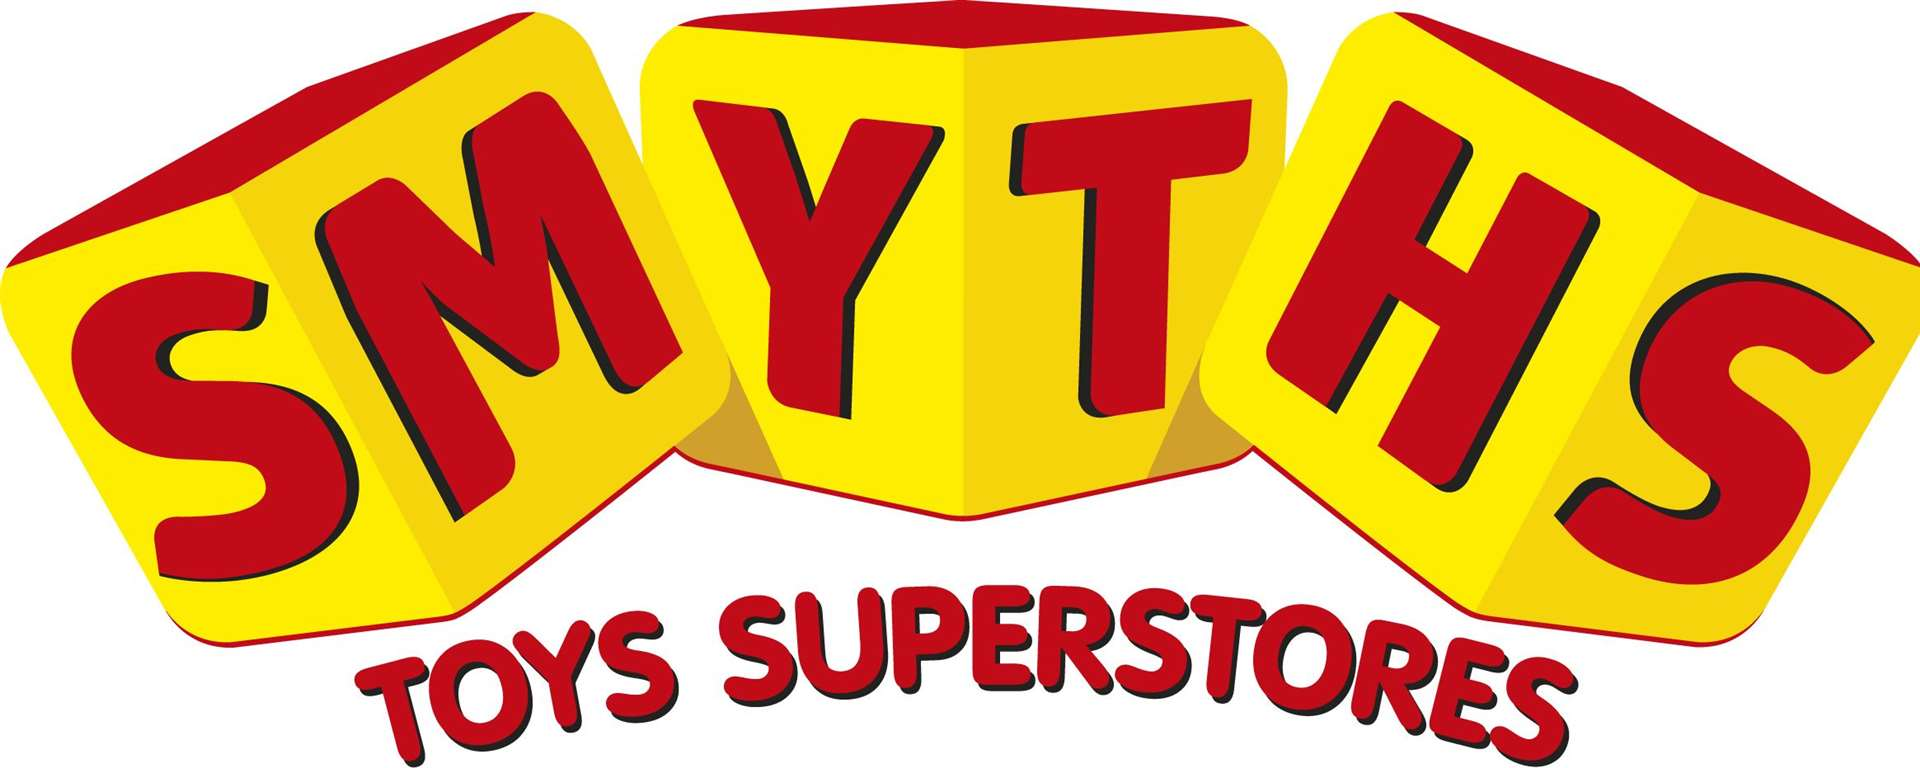 Smyths Toys is offering free LEGO giveaways with its latest instore event (8641067)